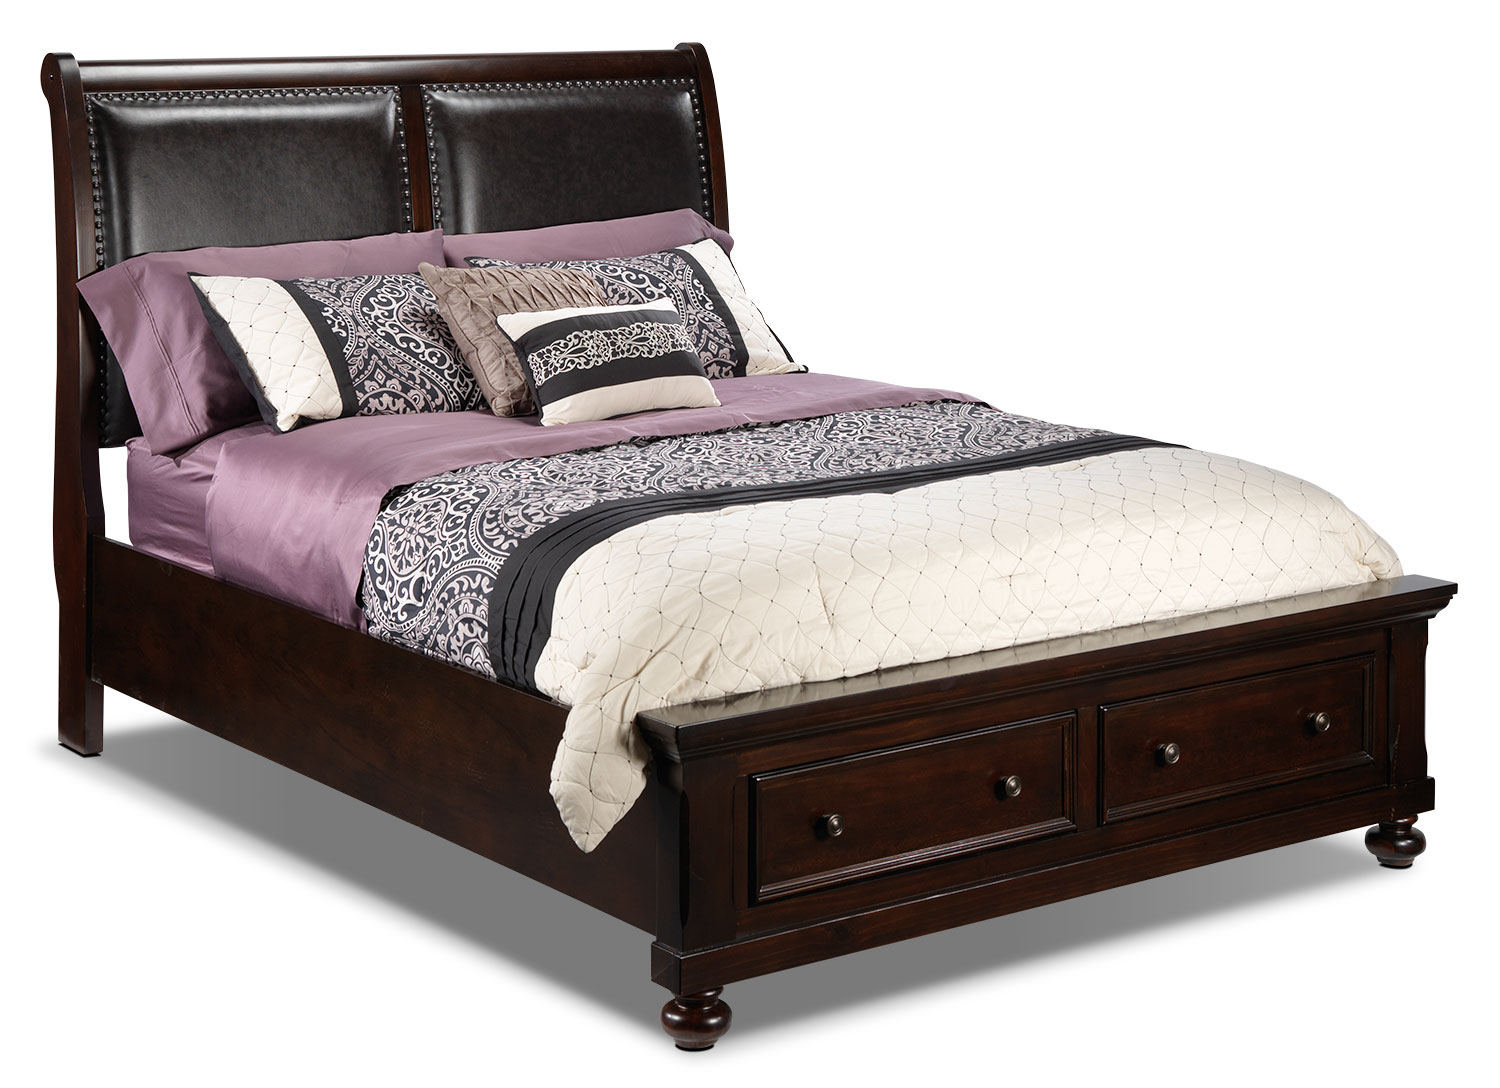 Chester Queen Storage Bed - Cherry